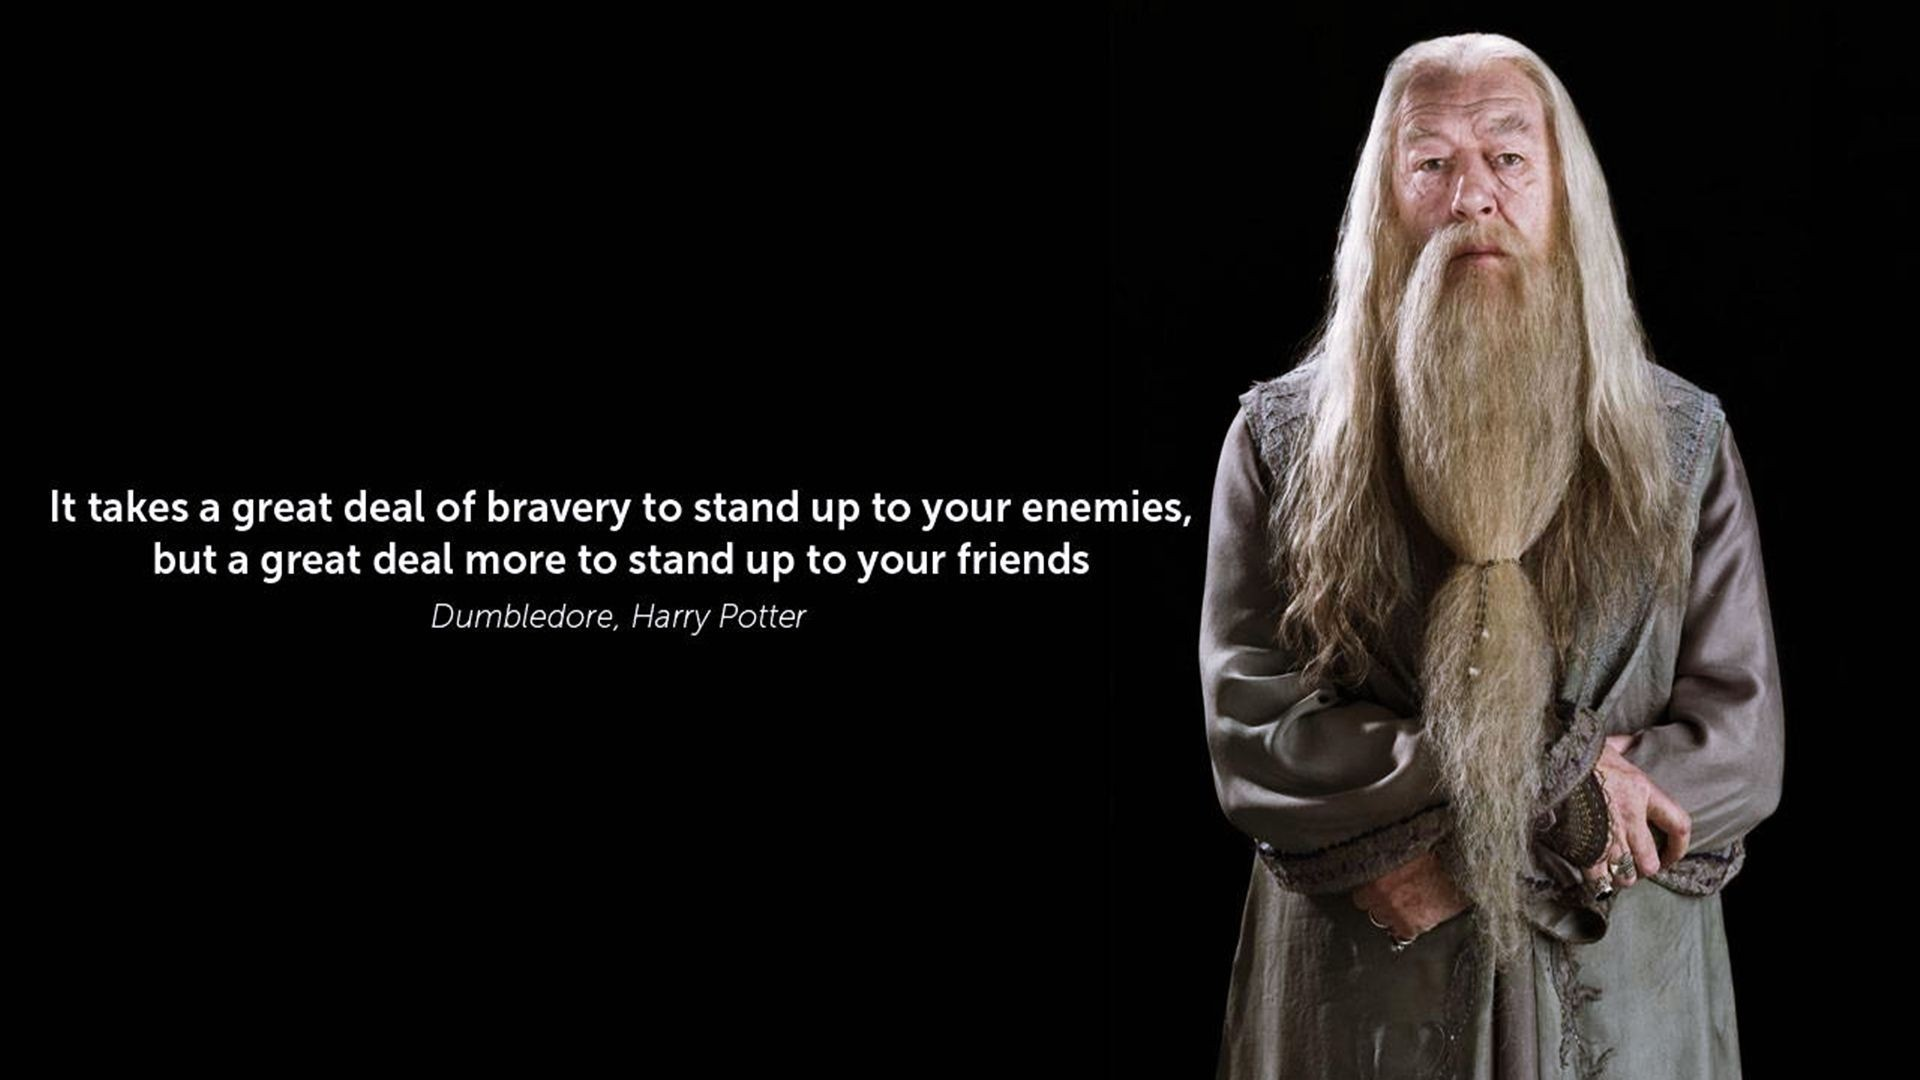 Dumbledore Quote Iphone Wallpaper Harry Potter Quote Wallpapers 62 Images